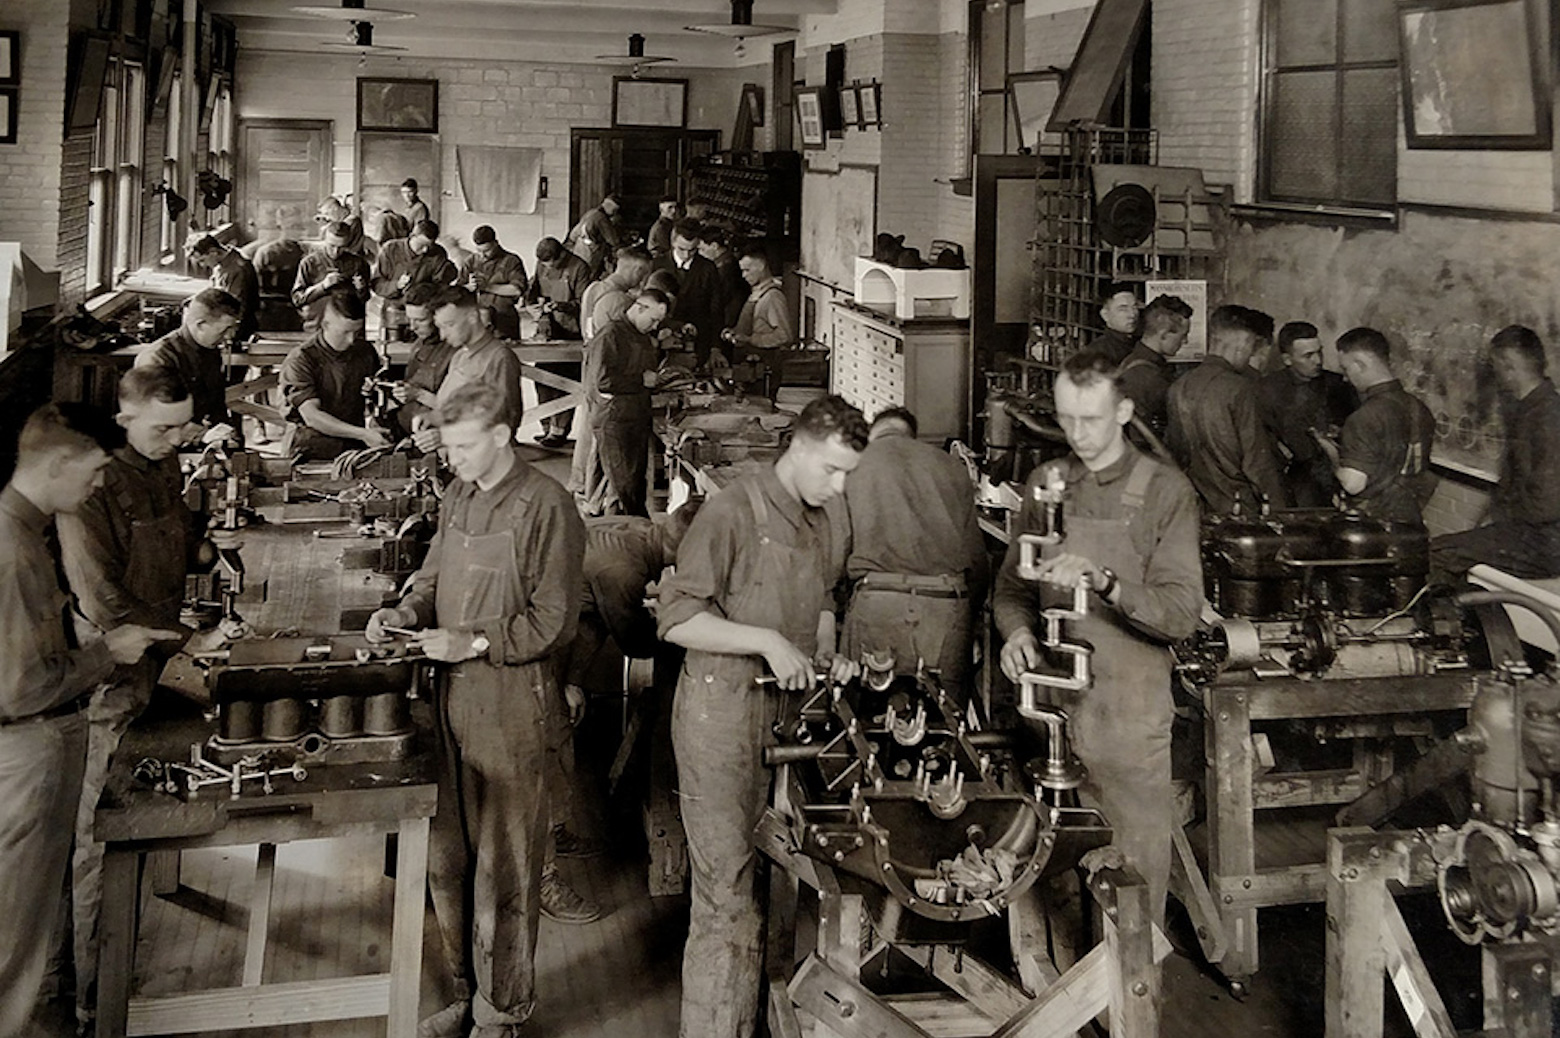 Men working on car parts in assembly line